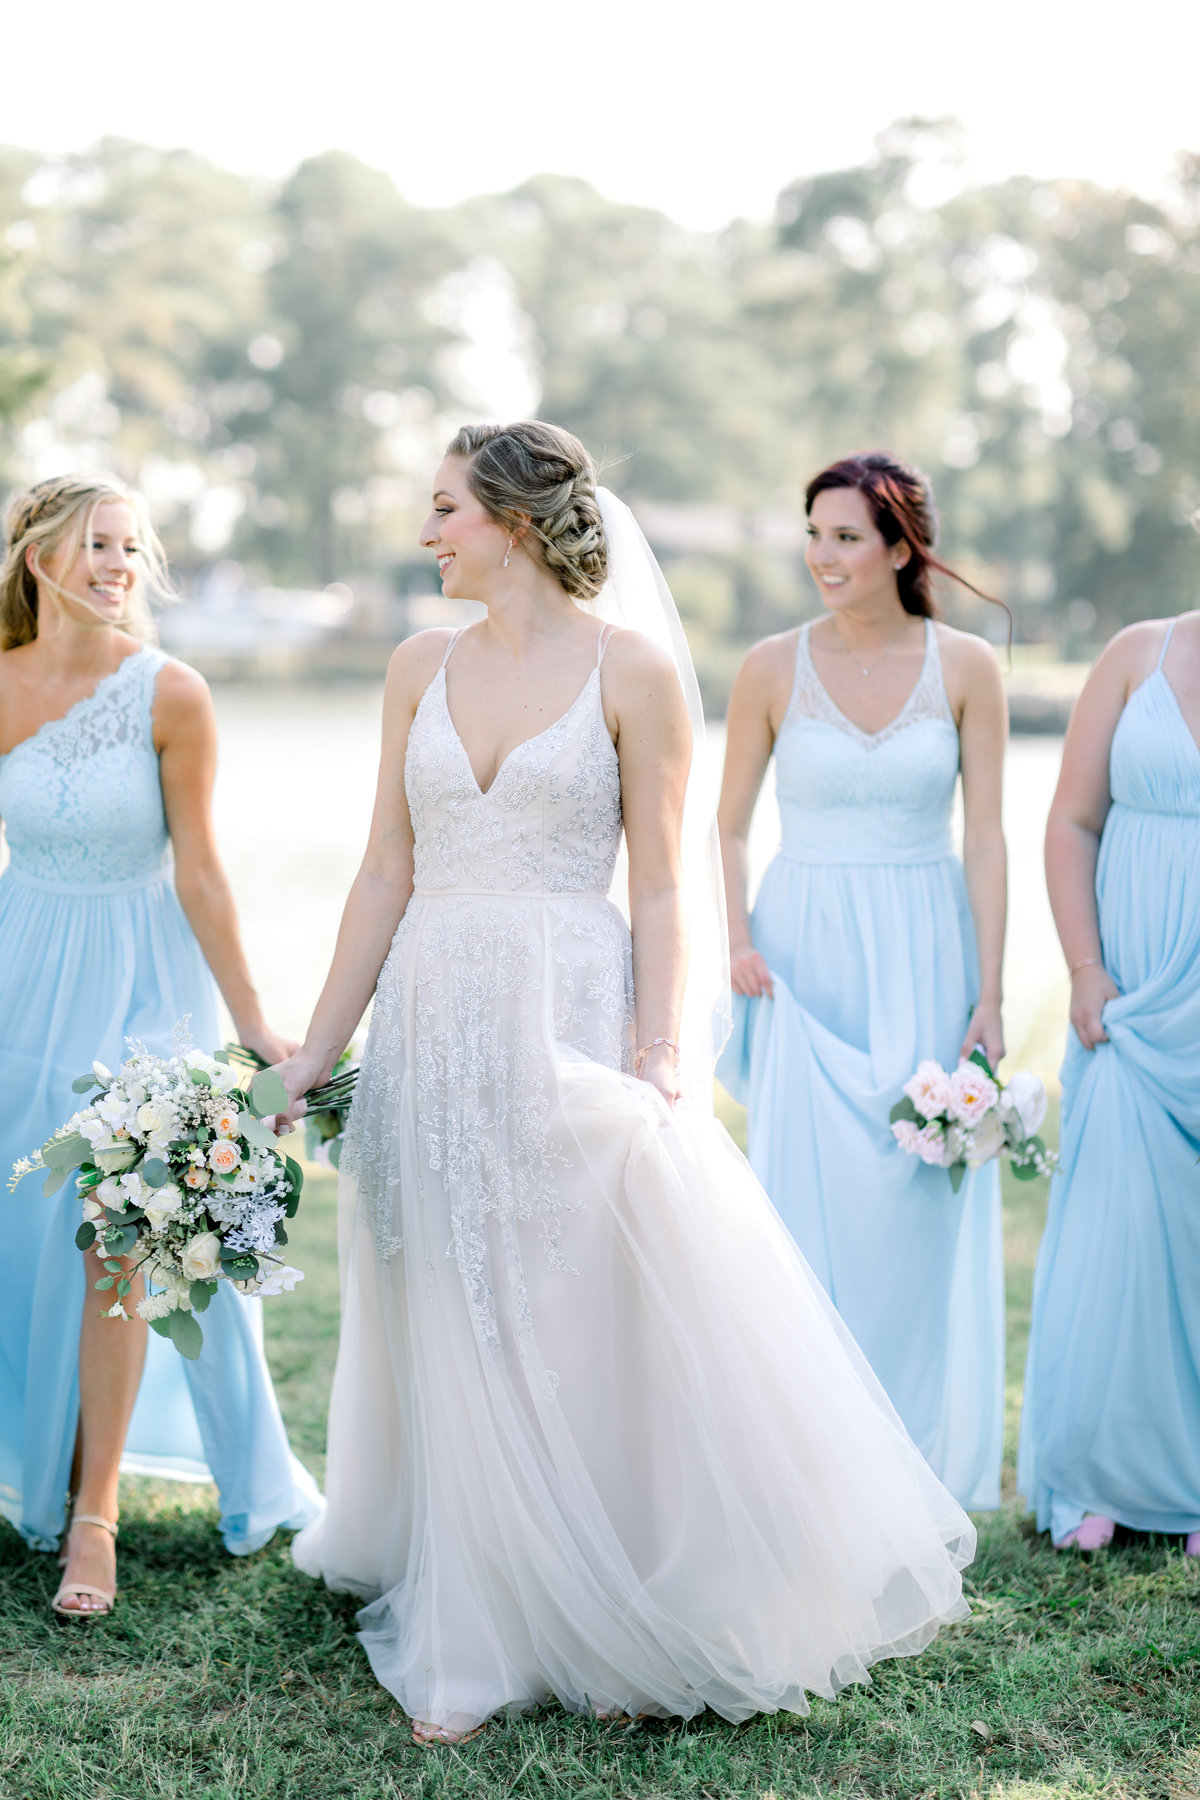 Washington DC Wedding Photography, bride and bridesmaids standing together